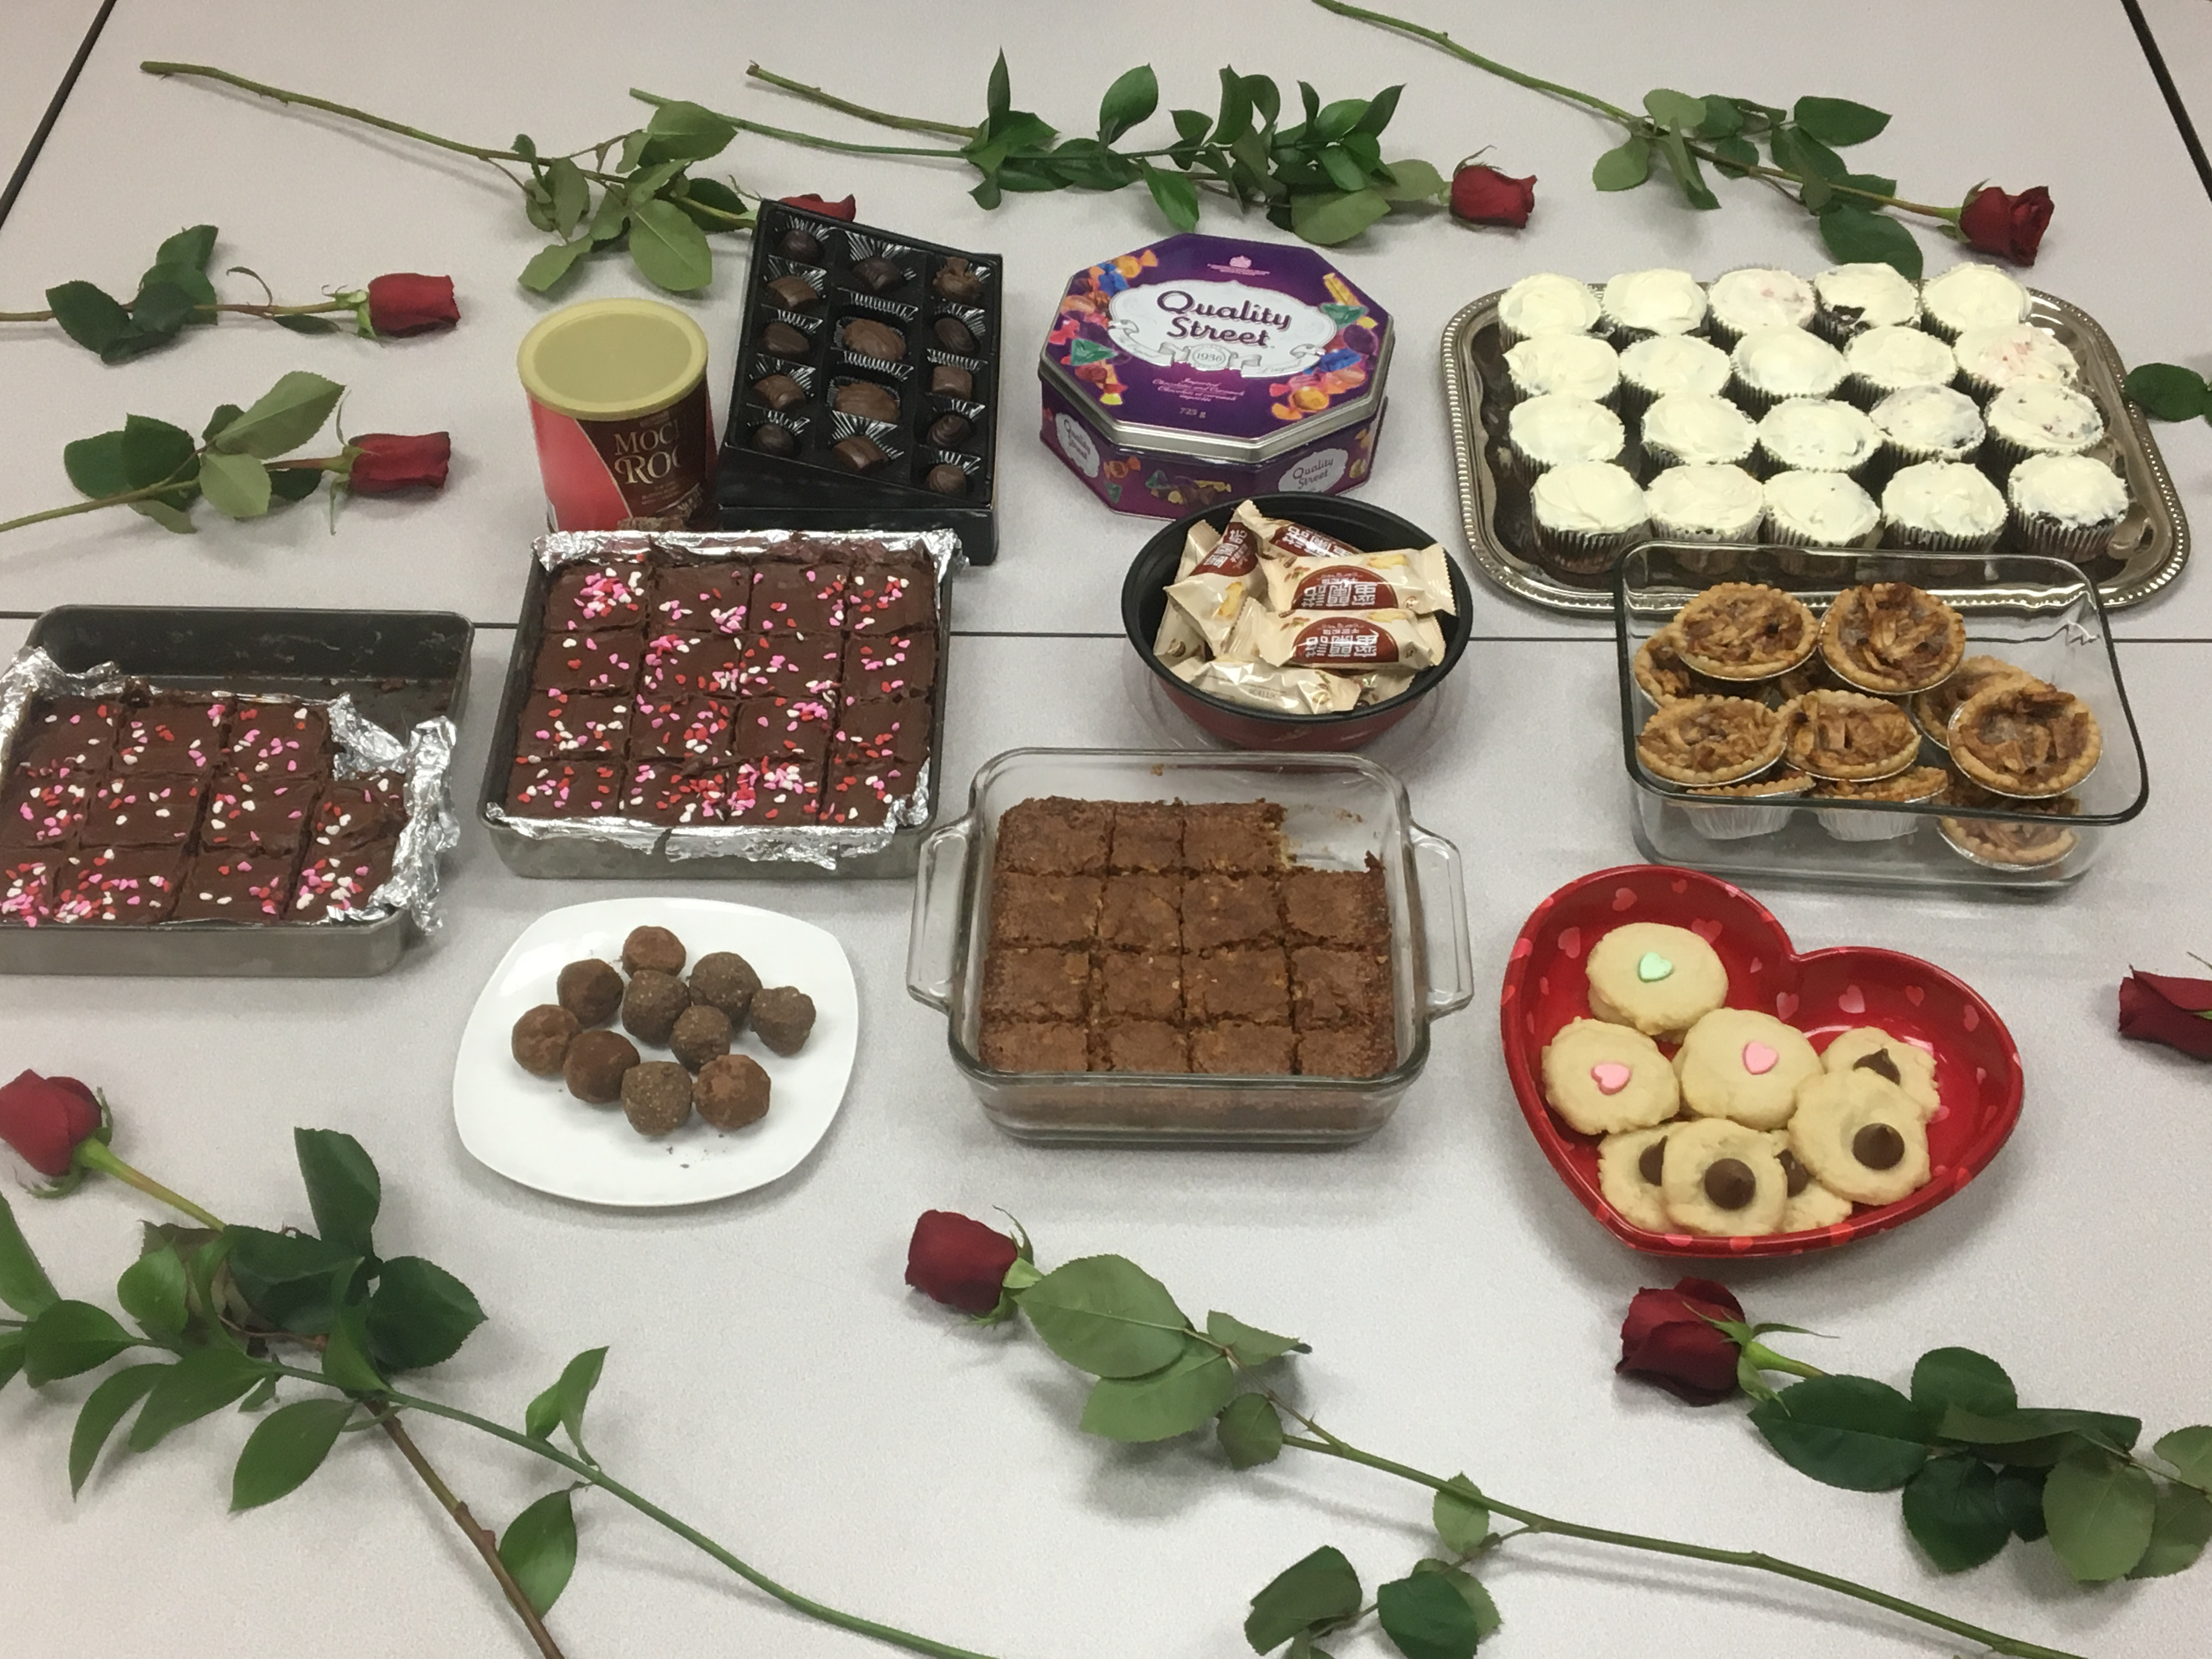 Happy Valentine's Day! Celebrating with some delicious treats created and/or shared by the Dealers Ingredients employees. Roses on the table was a nice surprise from the boss.